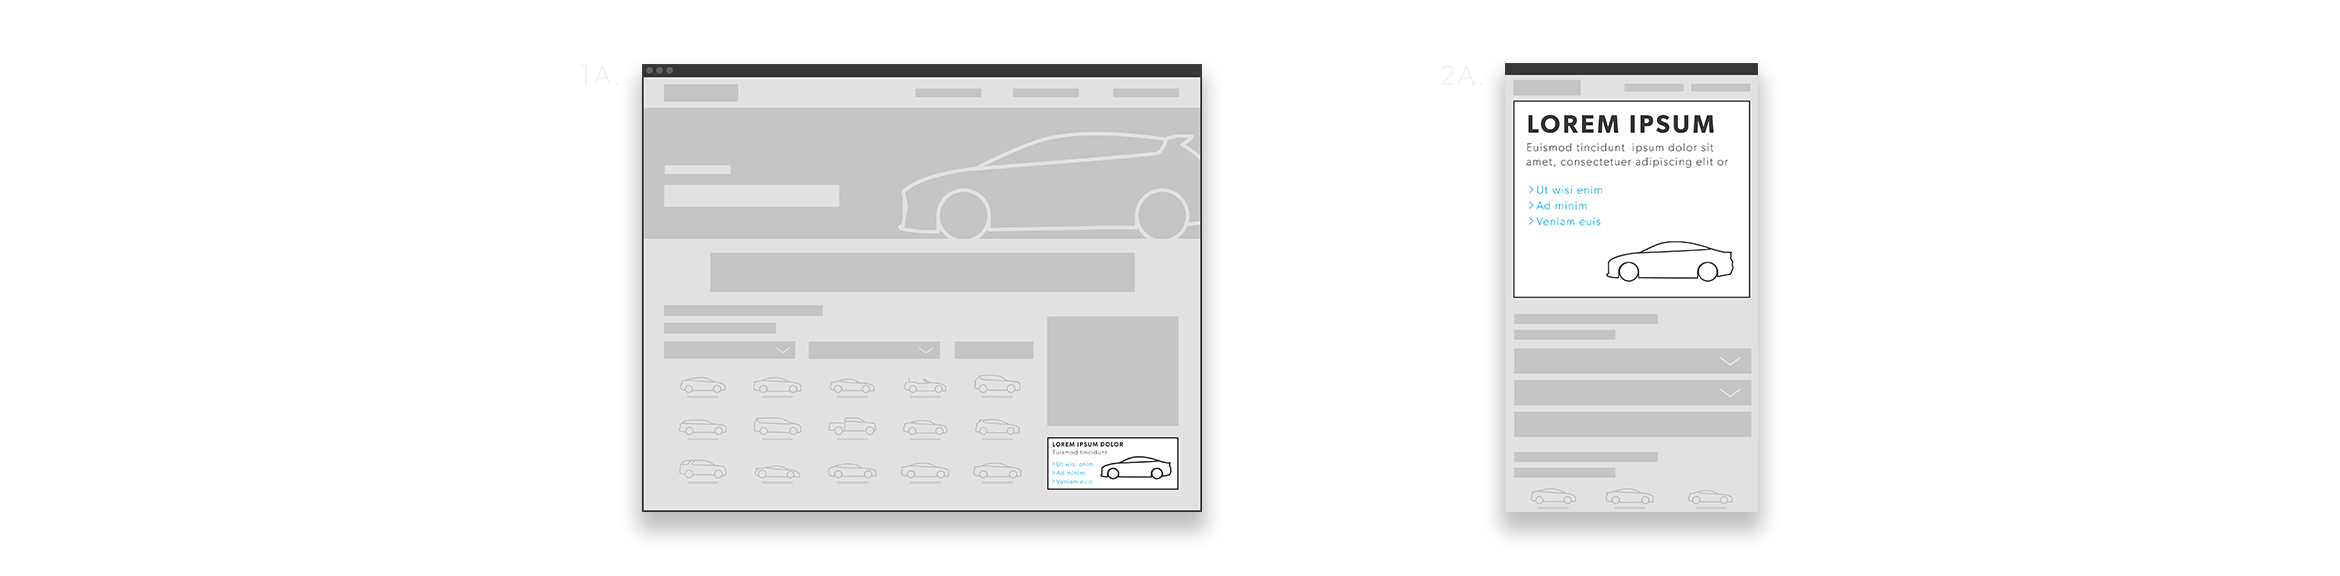 Vehicle Spotlight Wireframe Desktop Graphic